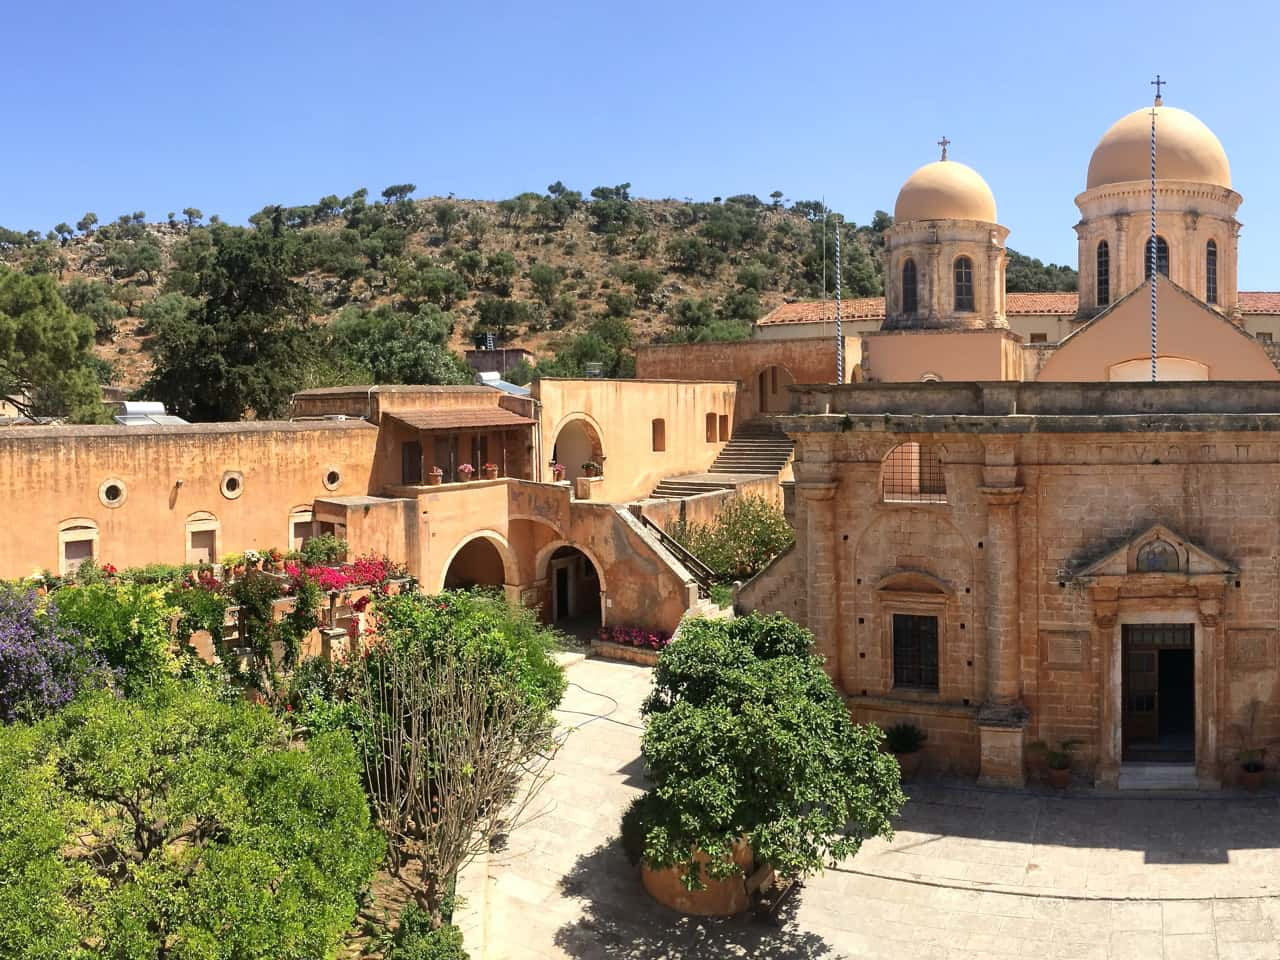 Agia Triada (Holy Trinity), or the Tsangarolon Monastery of the 17th century